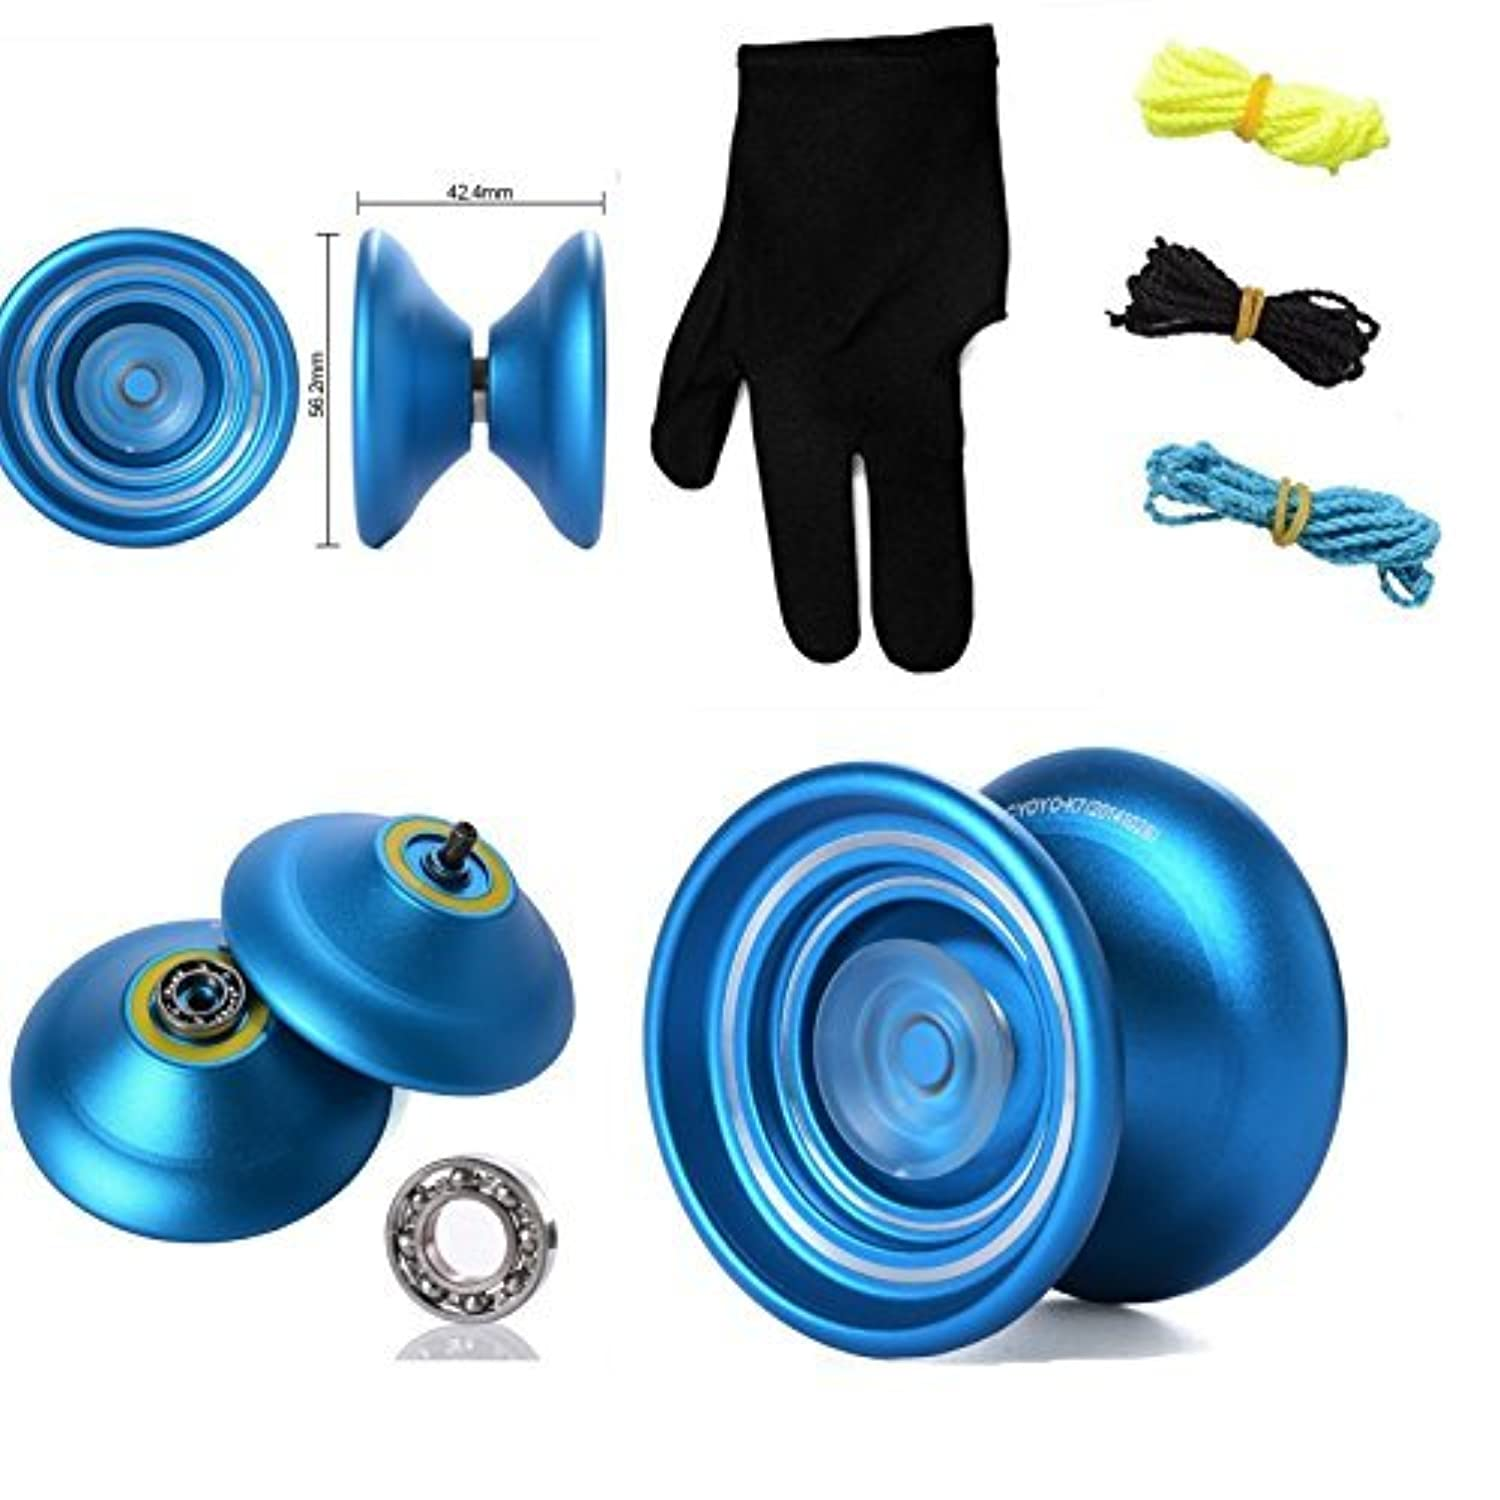 Responsive Aluminum Metal Yoyo MAGICYOYO K7 for Beginners -Blue+ Glove+3 Strings [並行輸入品]